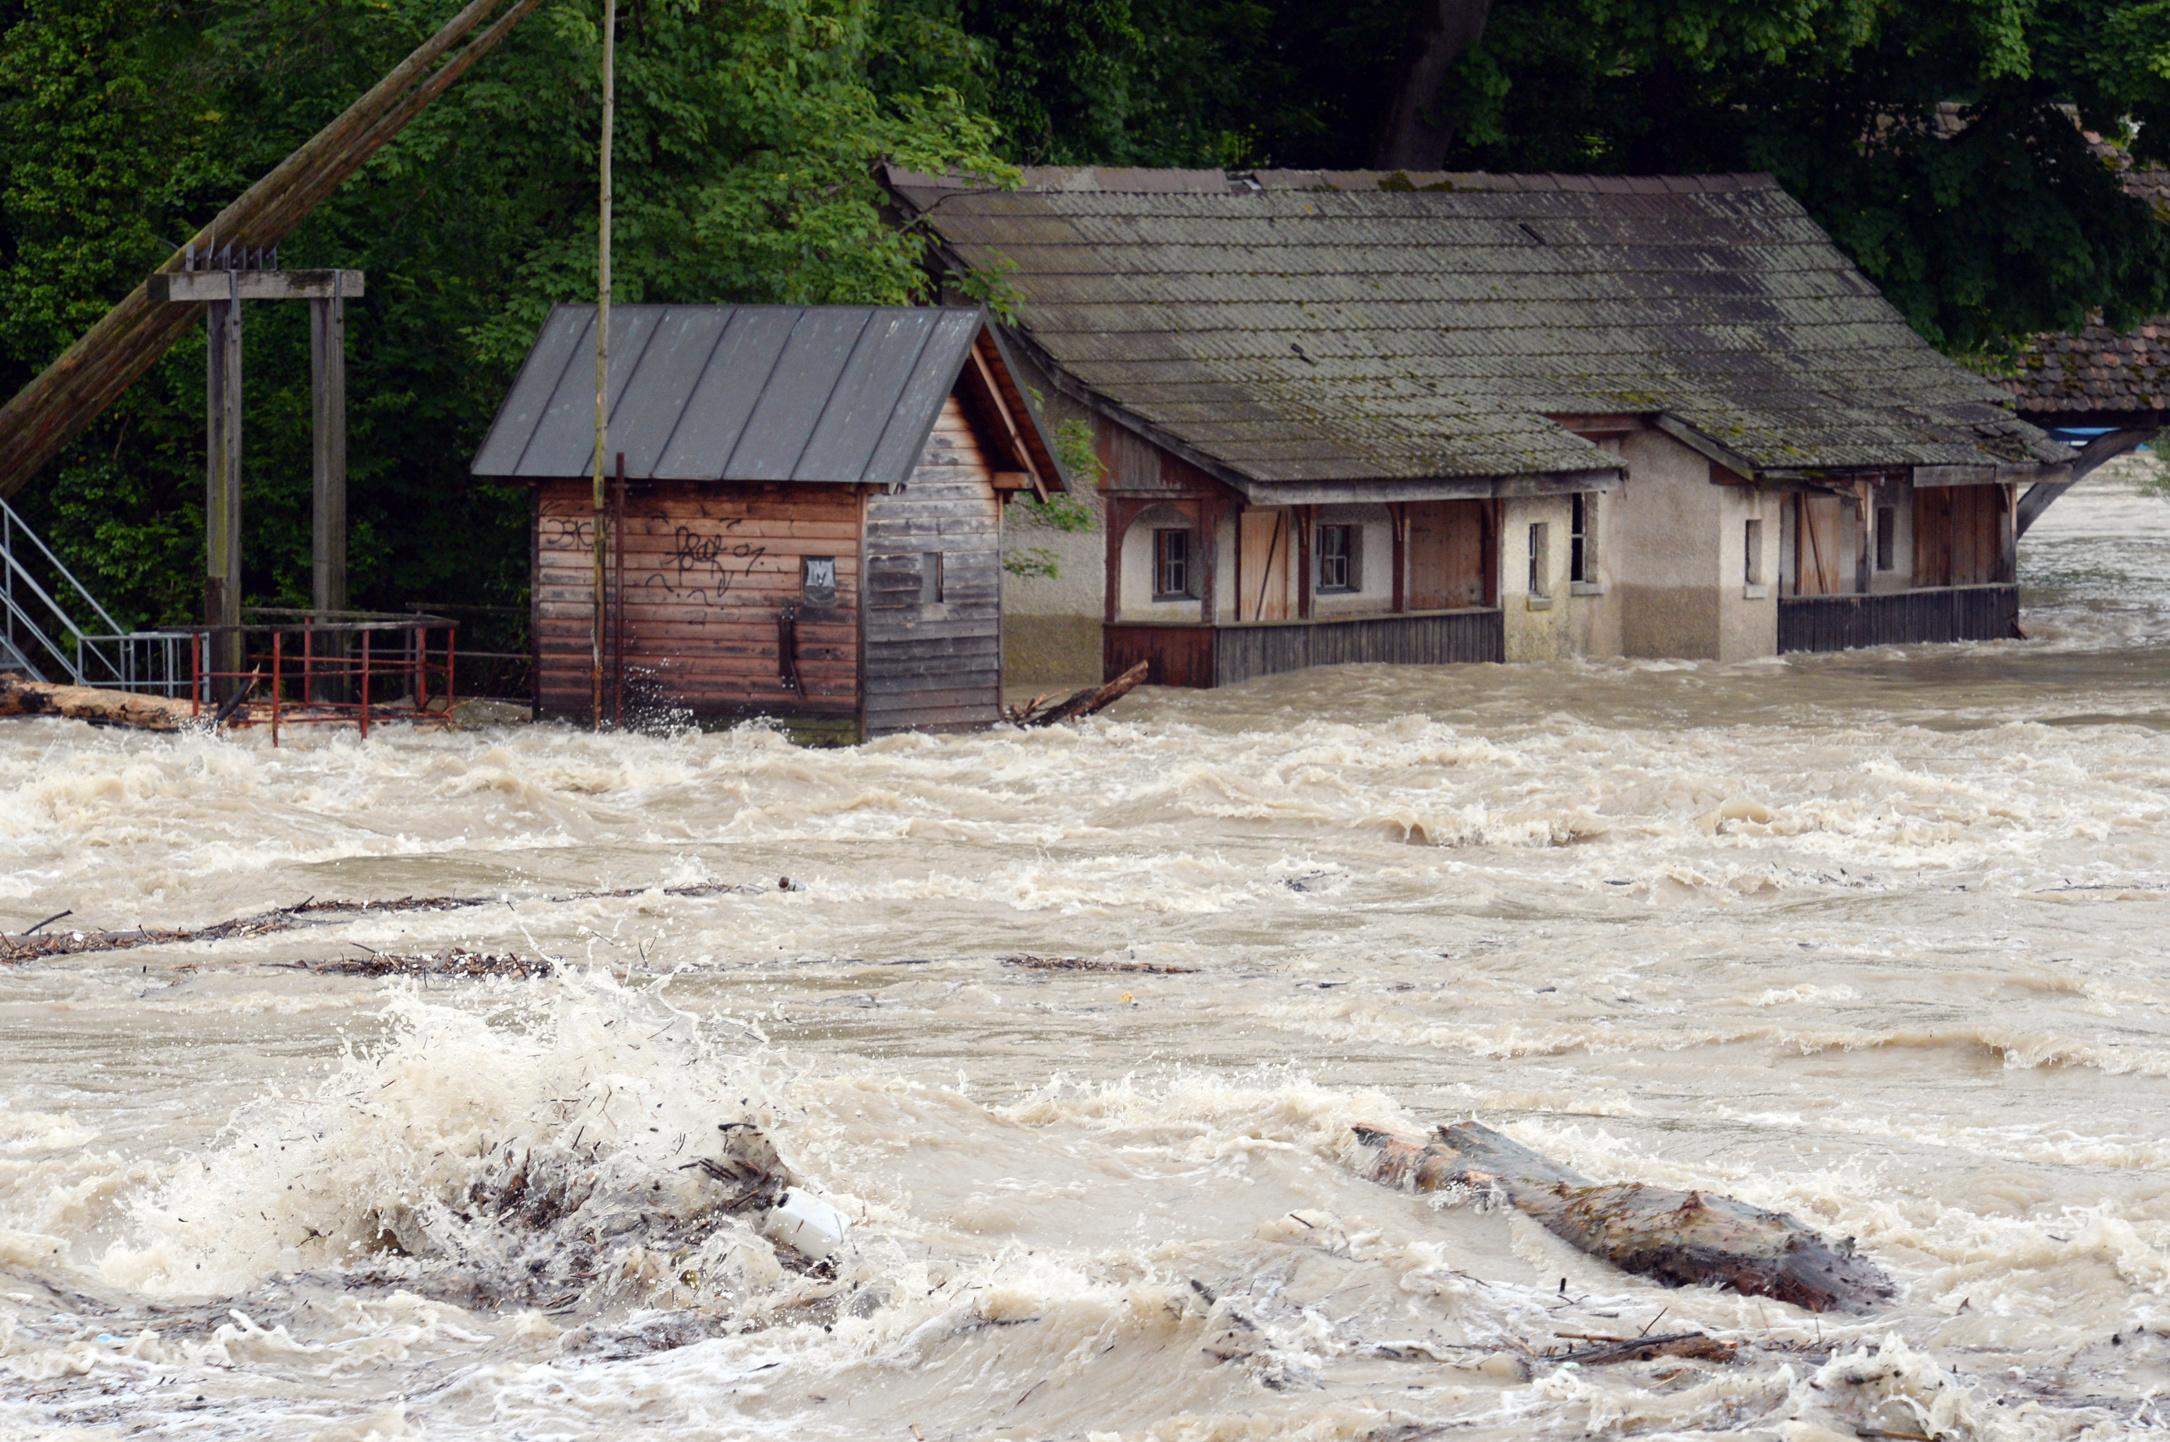 Central Europe hit by floods after days of rain